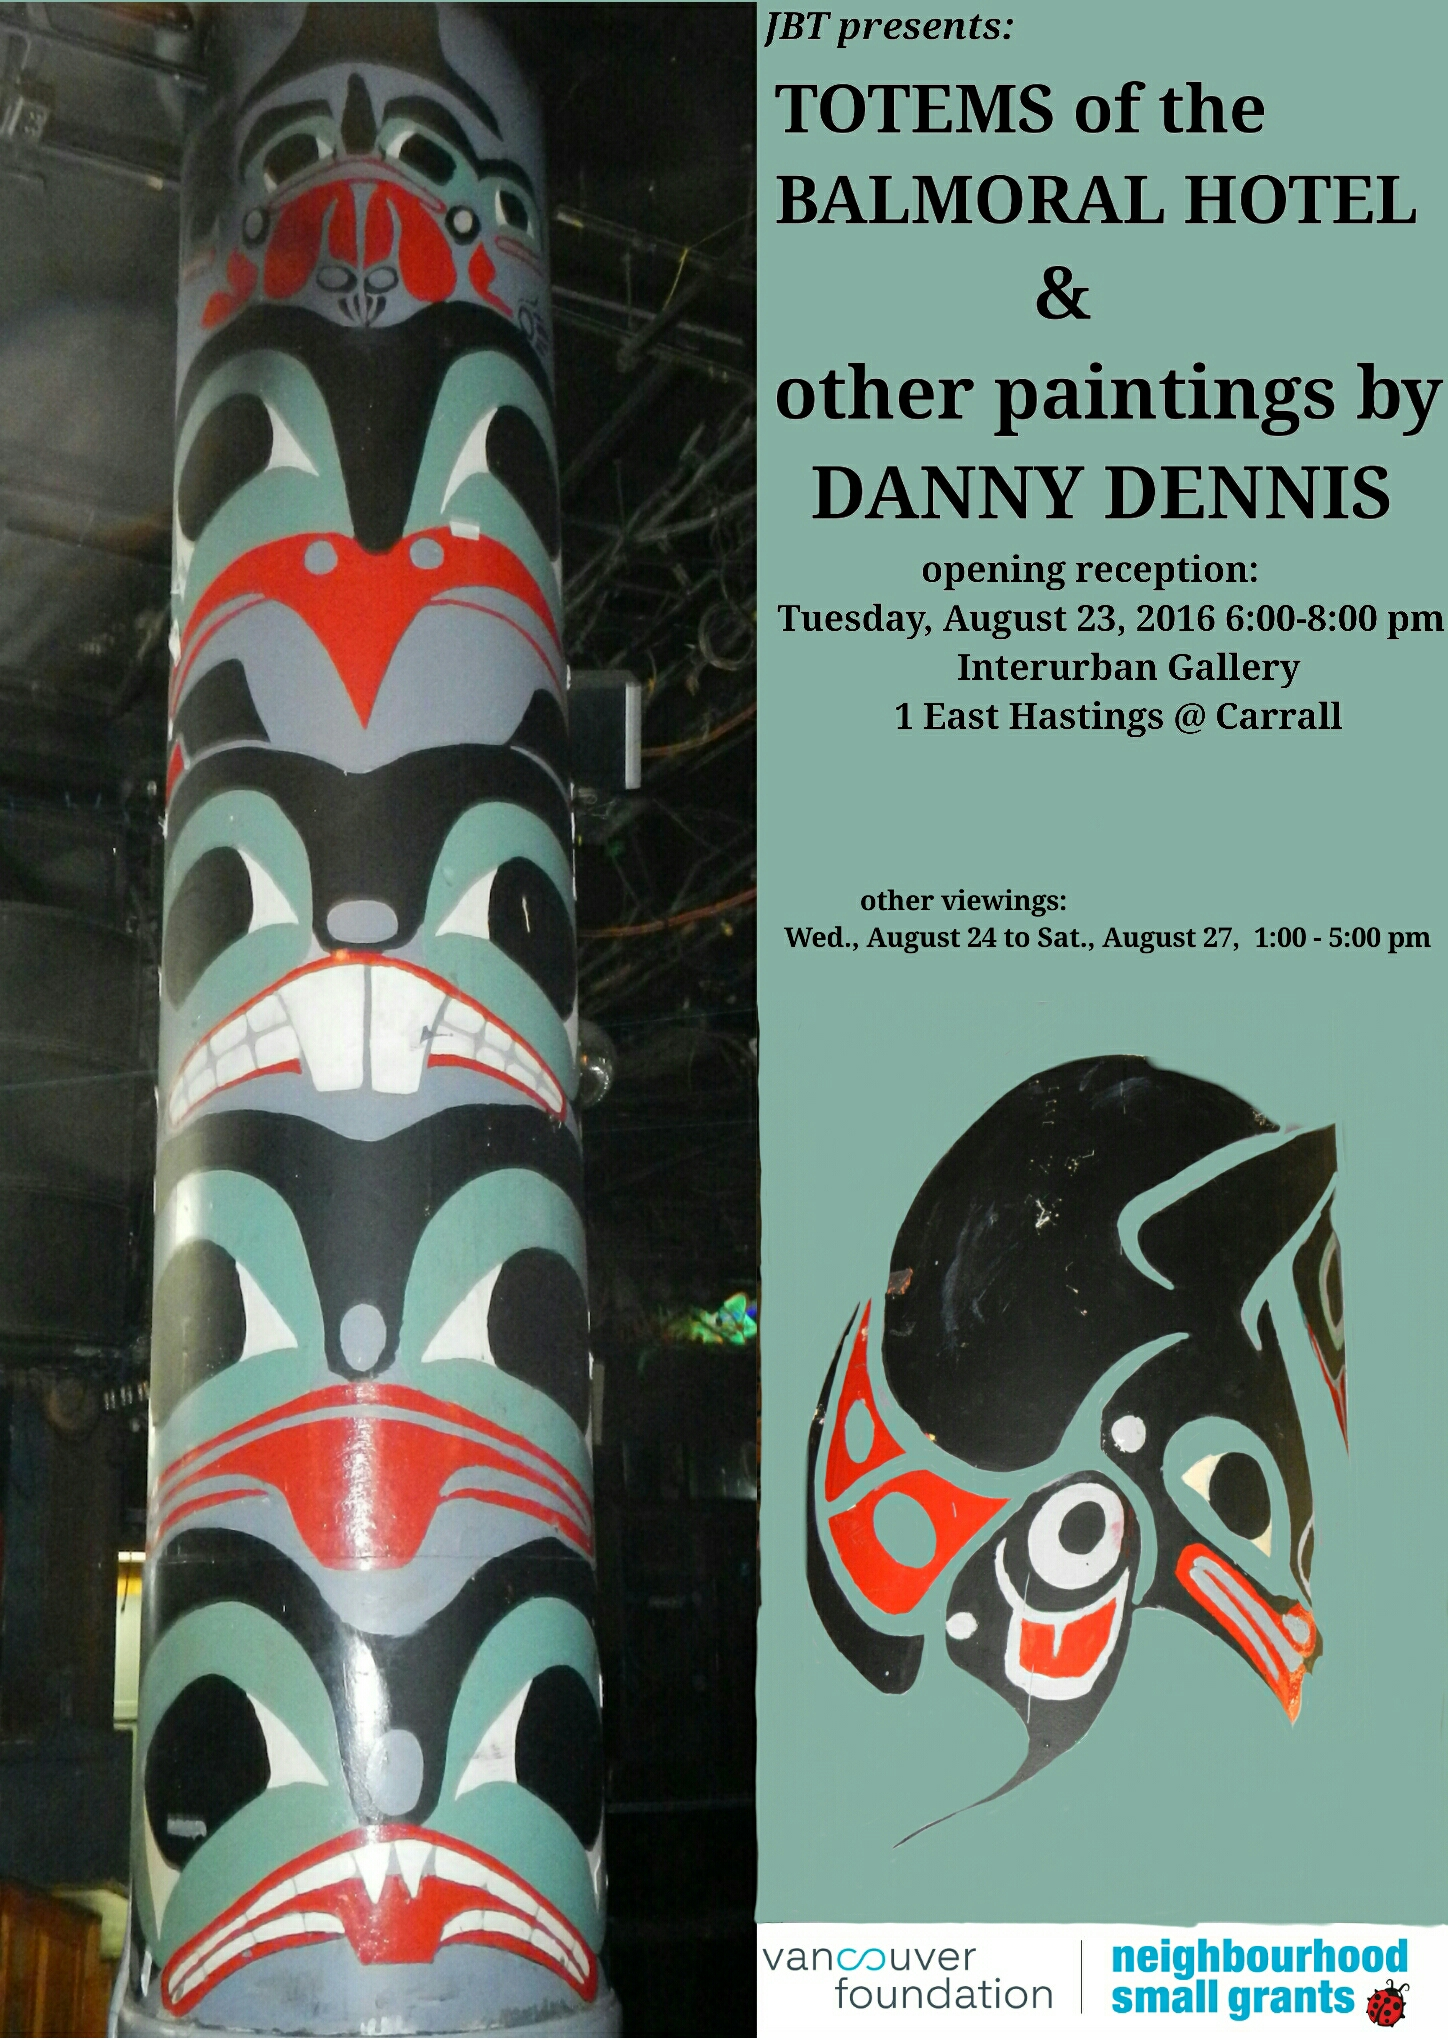 20160823_totems_of_the_balmoral_hotel.jpg